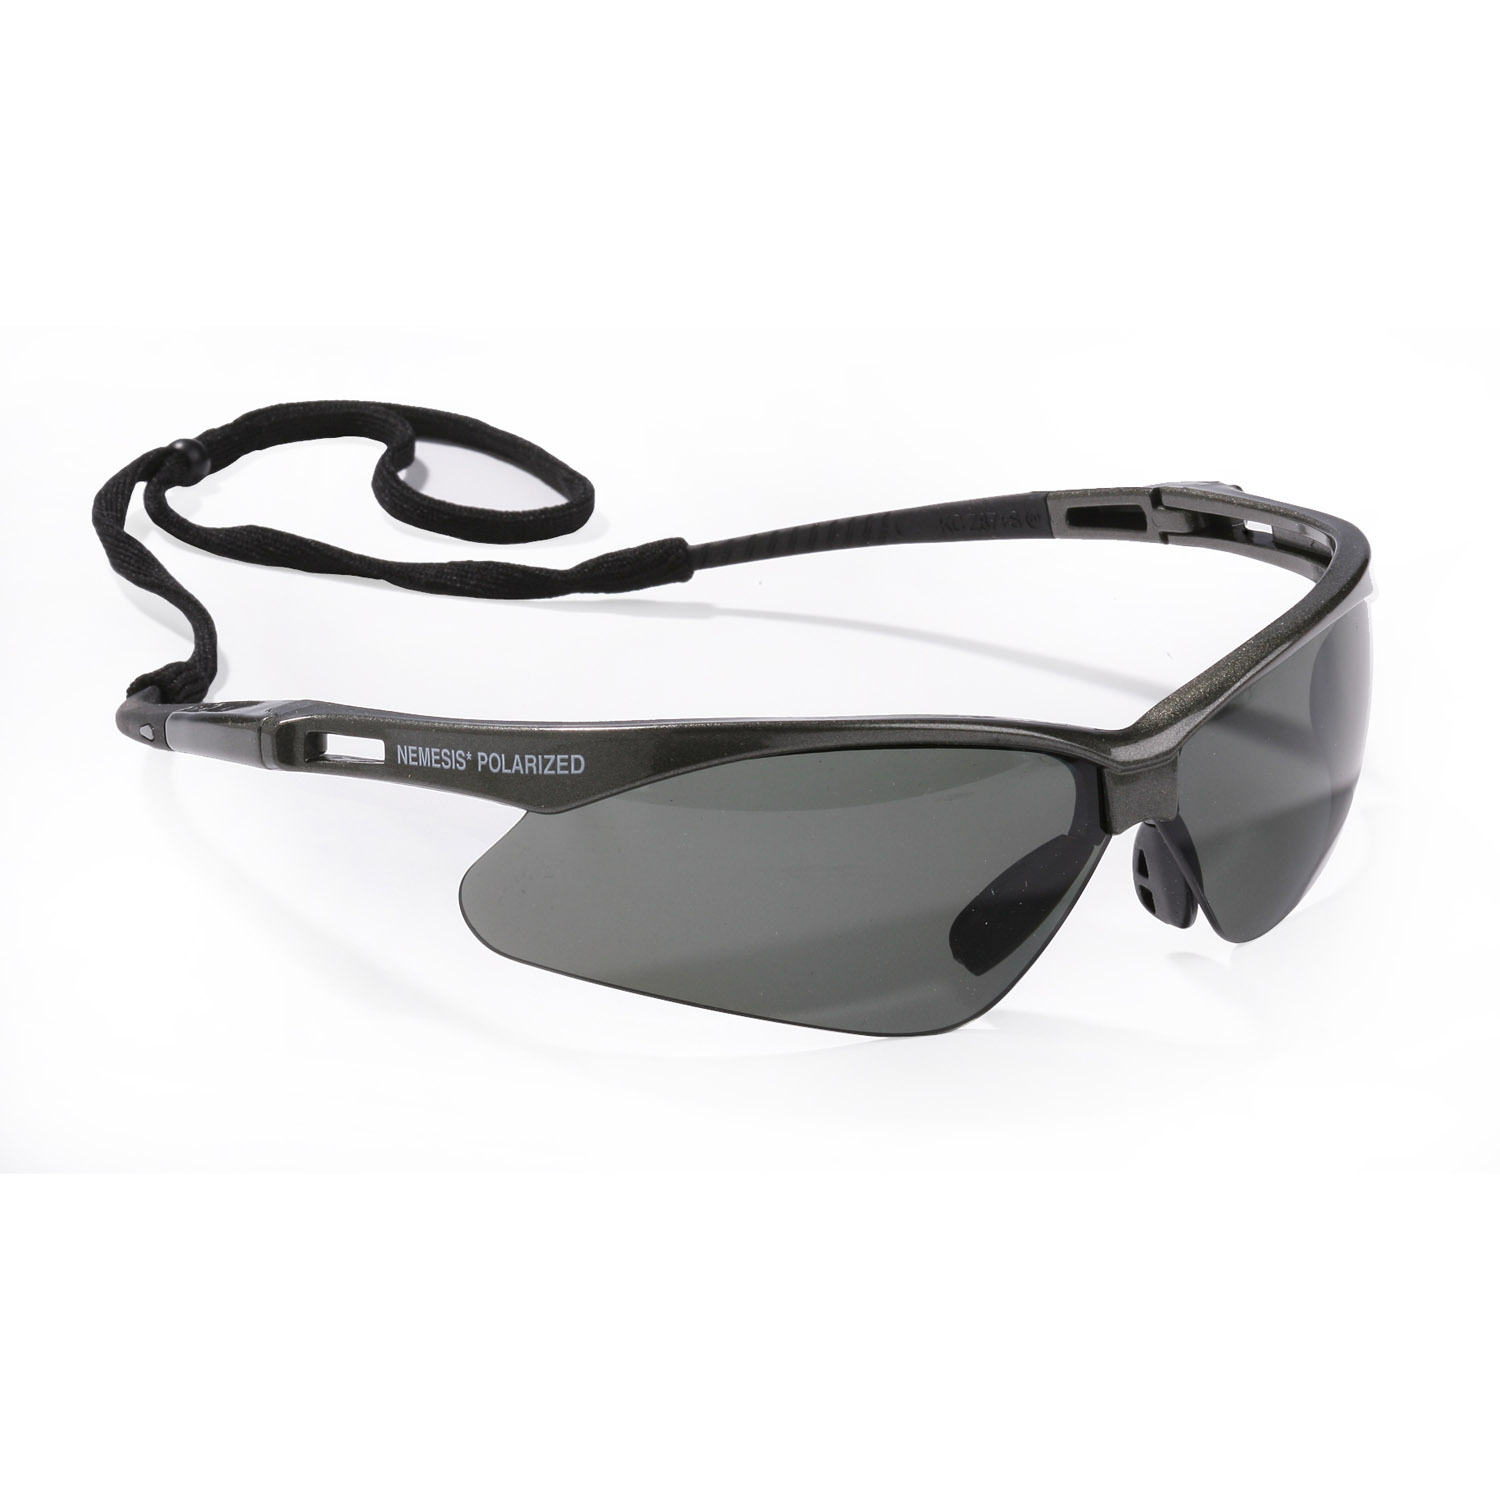 Kimberly Clark Nemisis Polarized Shooting Glasses